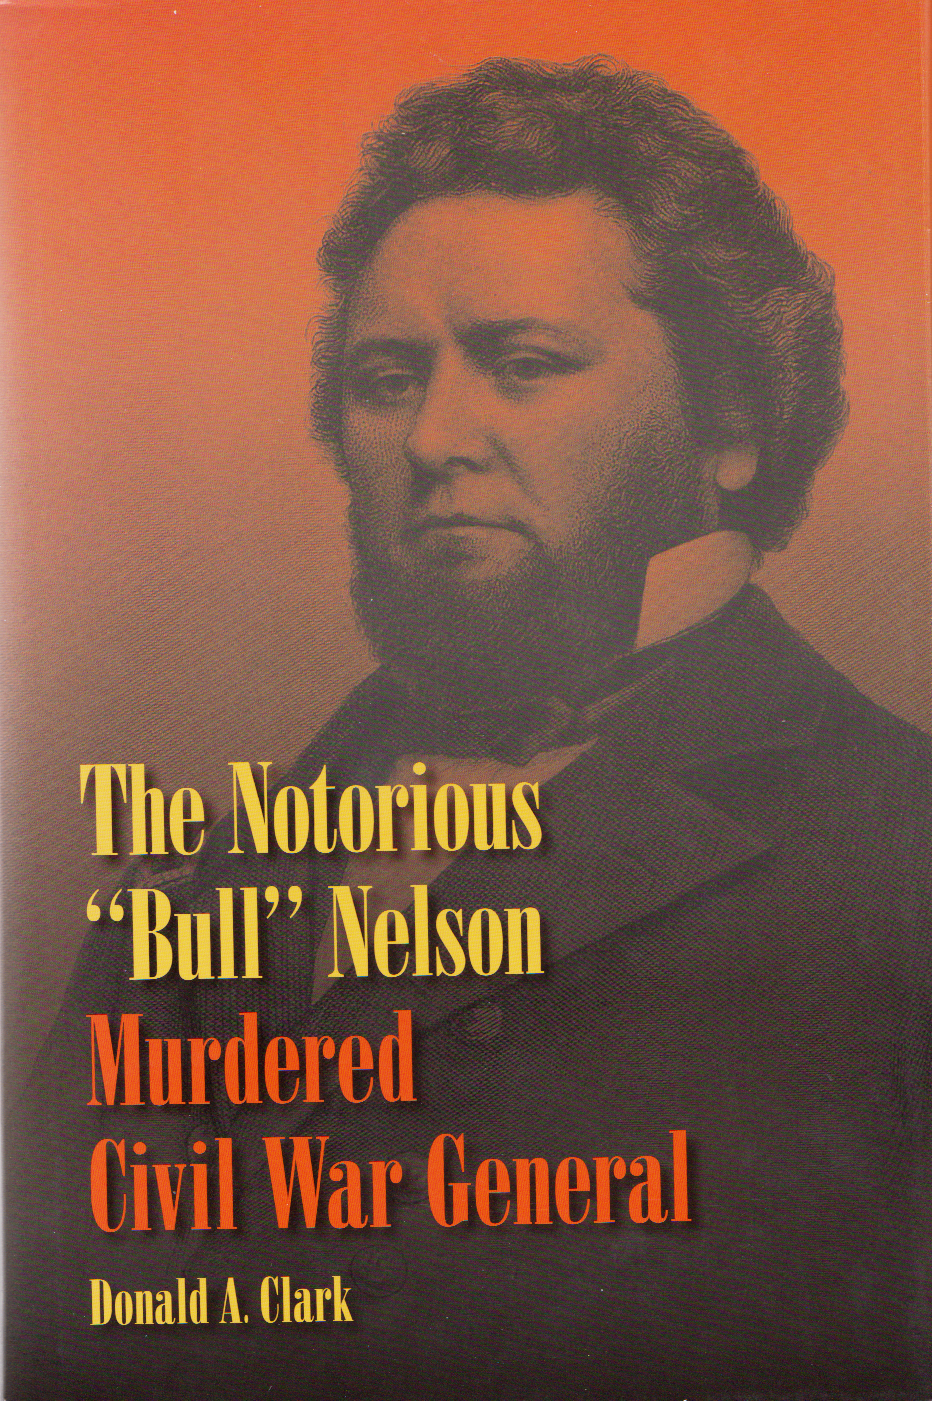 The Notorious Bull Nelson: Murdered Civil War General